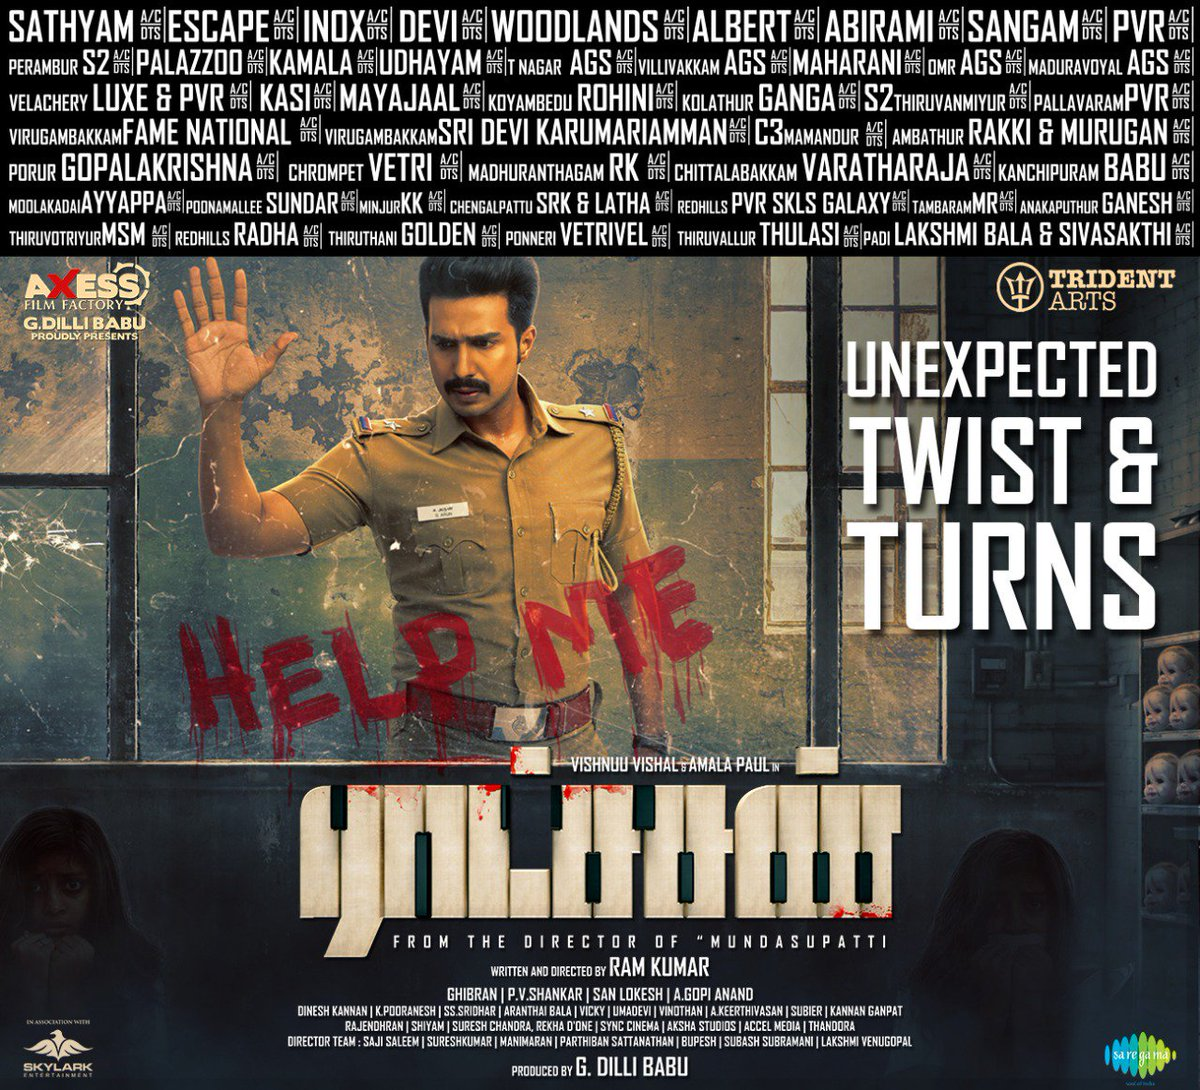 The first ever unpredictable screenplay and a thriller masterpiece of 2018 appreciated by all class and got a rating 9.5 ⭐ in IMDB #RatsasanRunningSuccessfully    @vishnuuvishal @Amala_ams @dir_ramkumar @GhibranOfficial @axessfilm @tridentartsoffl @SoundharyaRavi1